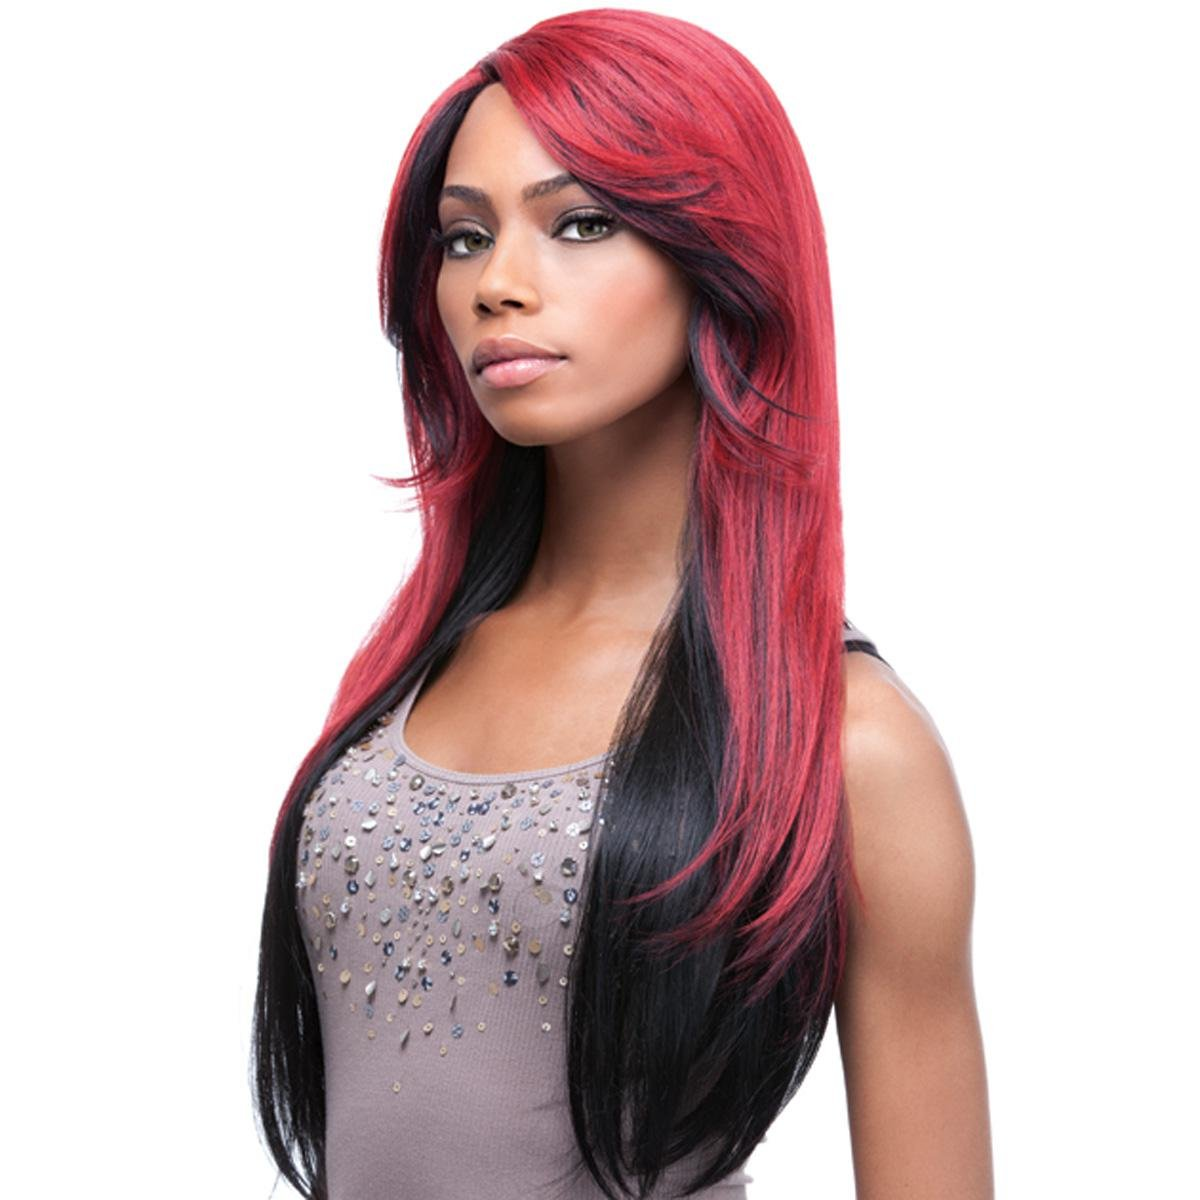 Sensationnel Synthetic Lace Front Wig Empress Edge Erin colour DD1BRED by Empress Lace Wig: Amazon.es: Belleza